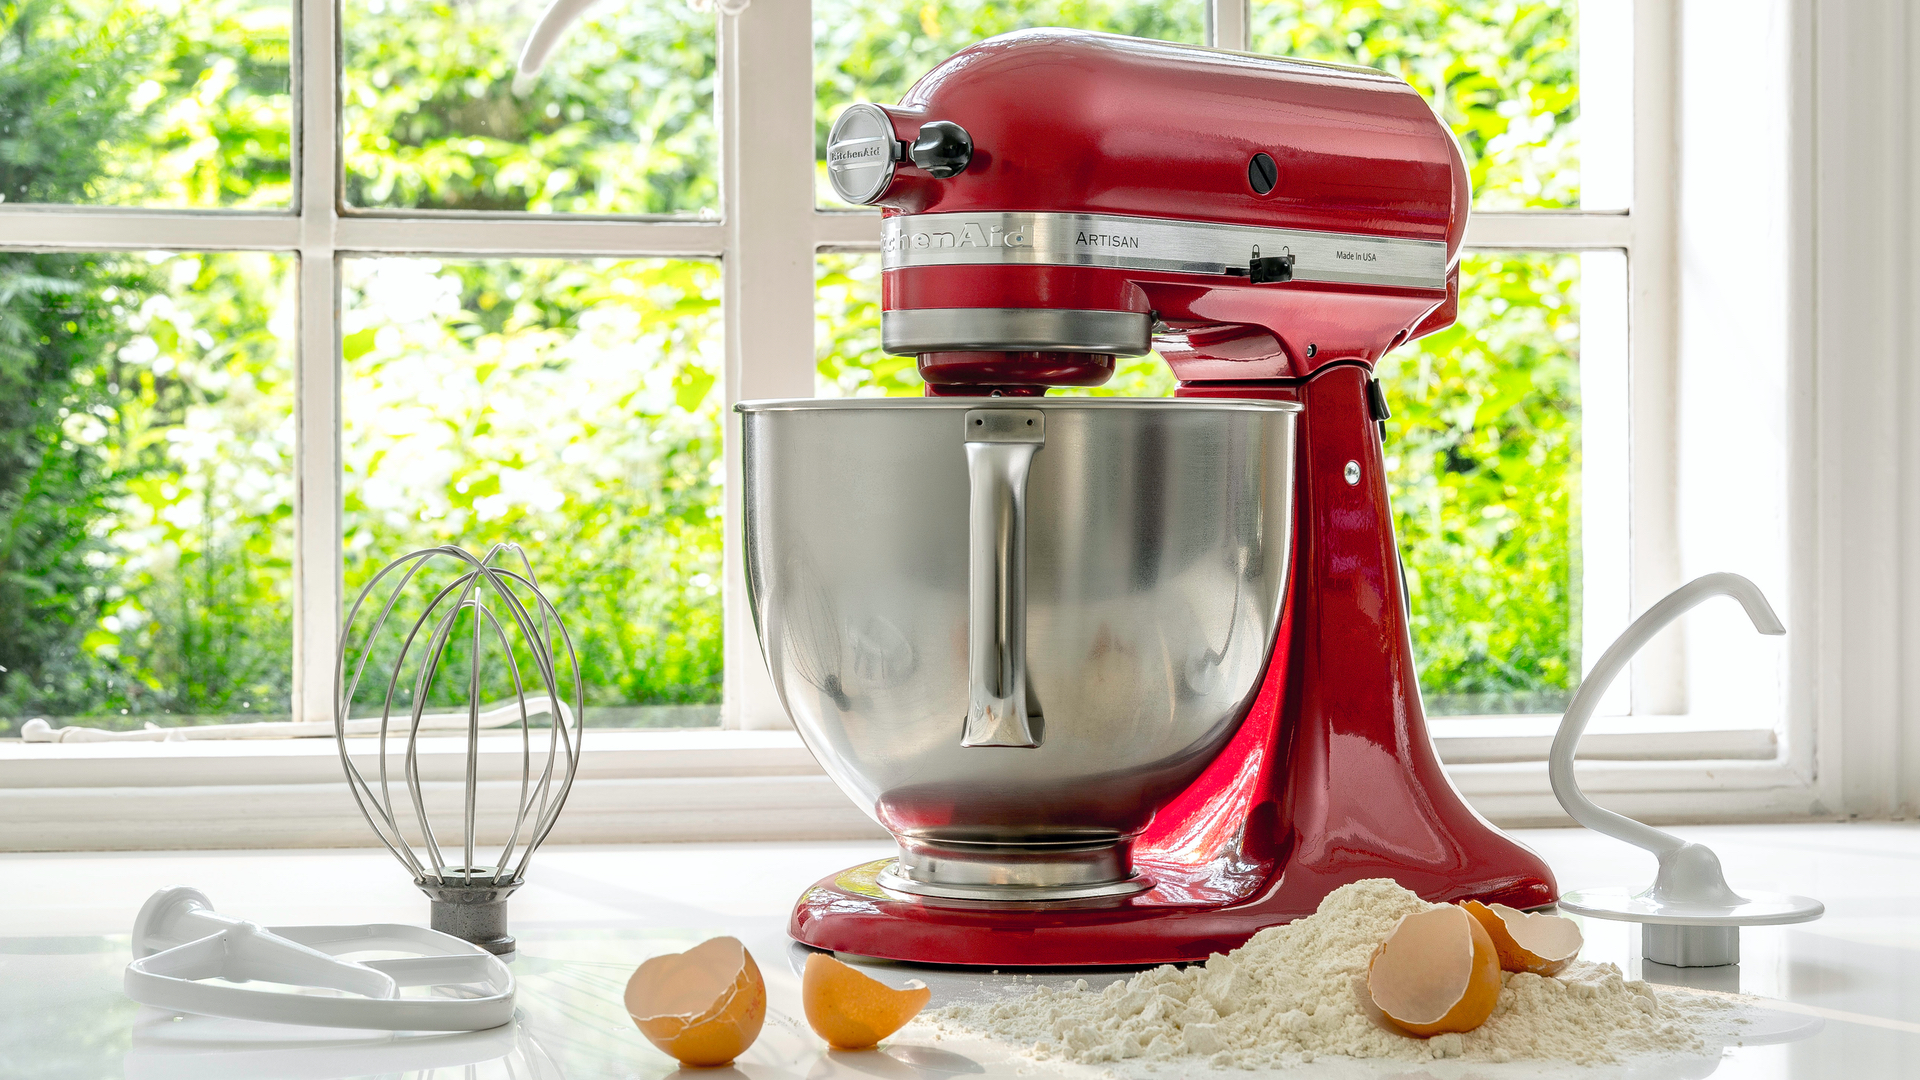 Best Kitchenaid Mixers 2020 Stand Mixers Blenders And